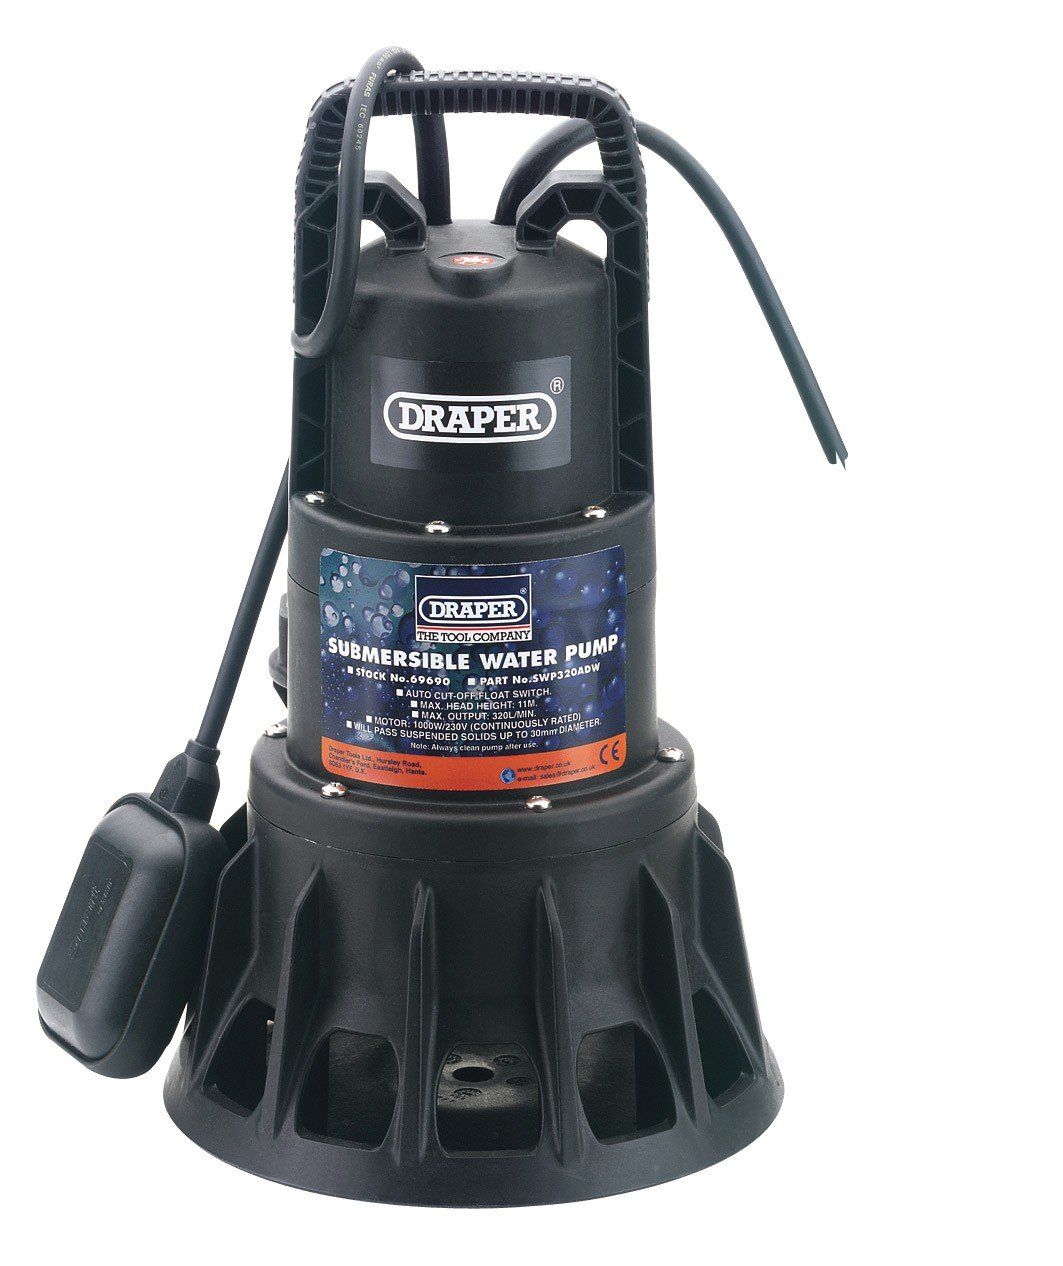 bluee Draper 69690 320-Litres-per-Minute (Maximum) 230-Volt 1,000-Watt Submersible Dirty Water Pump with Float Switch